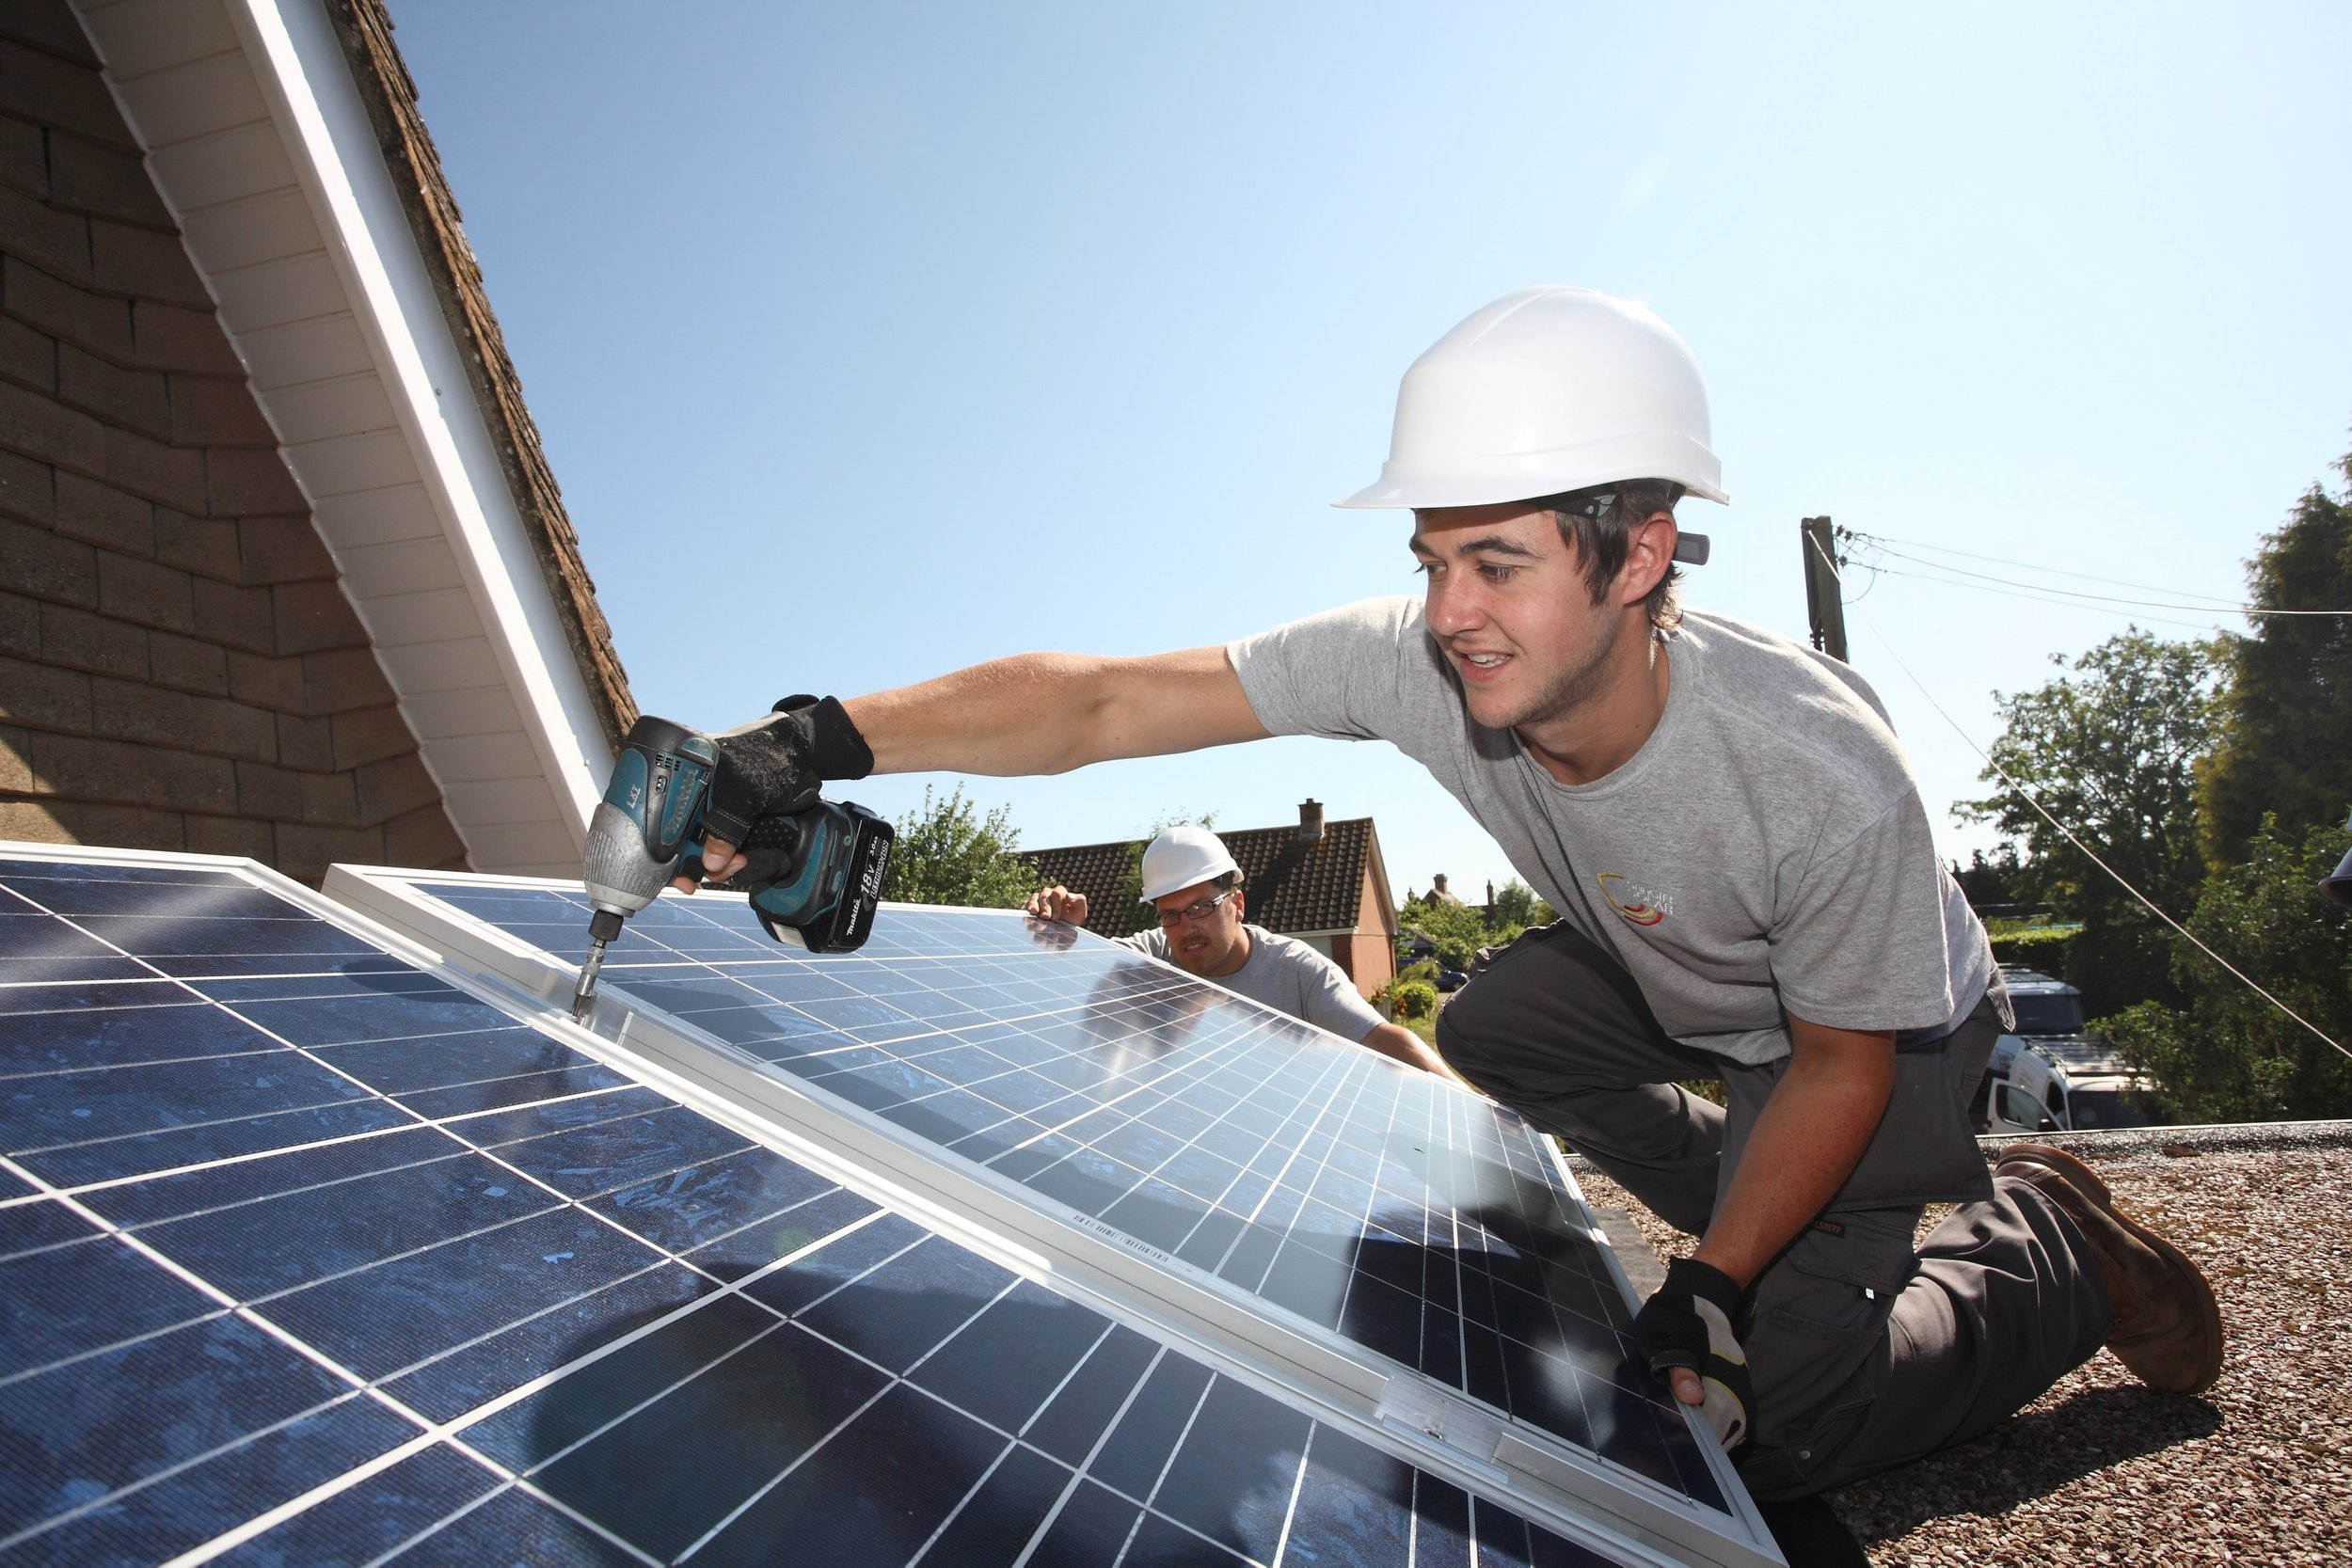 Although solar panels are frequently installed on a roofs they can also be installed on the ground.